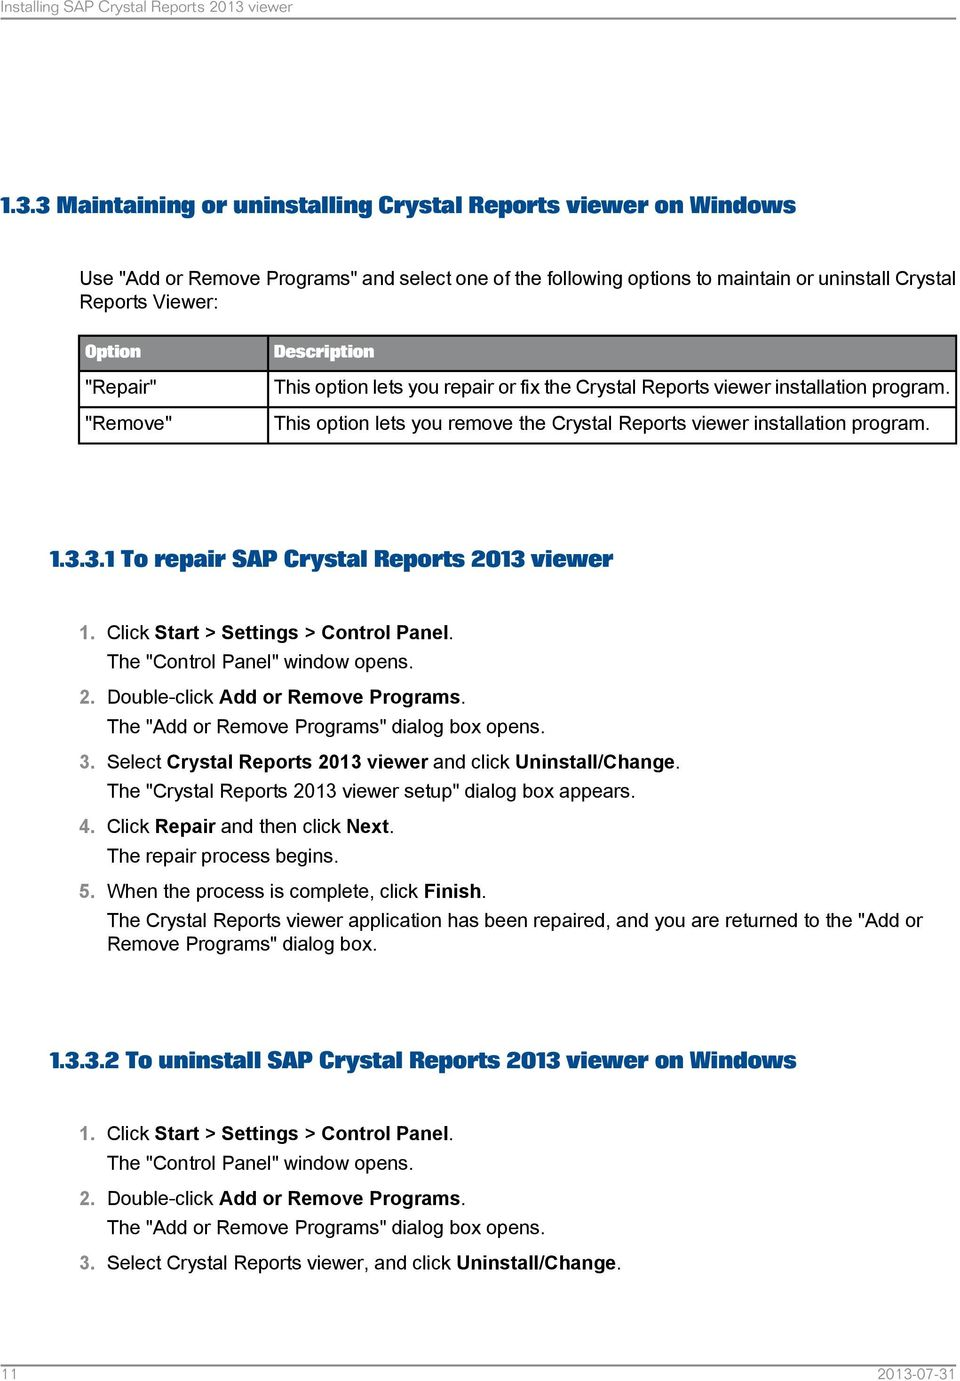 SAP Crystal Reports Viewer Installation Guide SAP Crystal